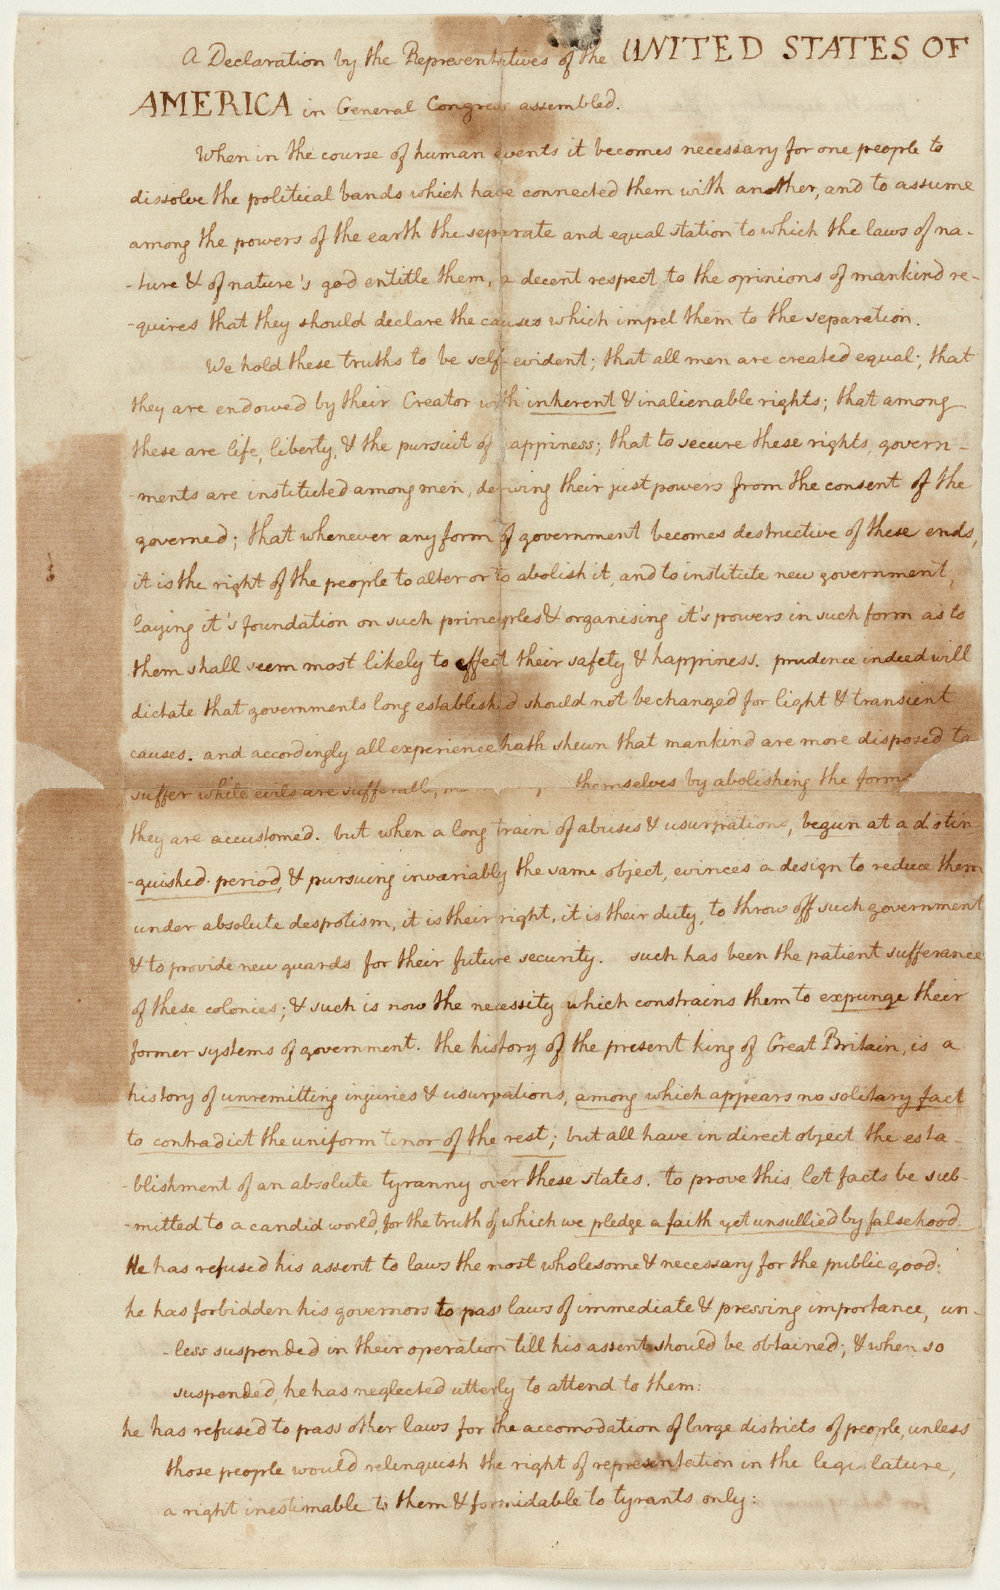 Thomas Jefferson's manuscript